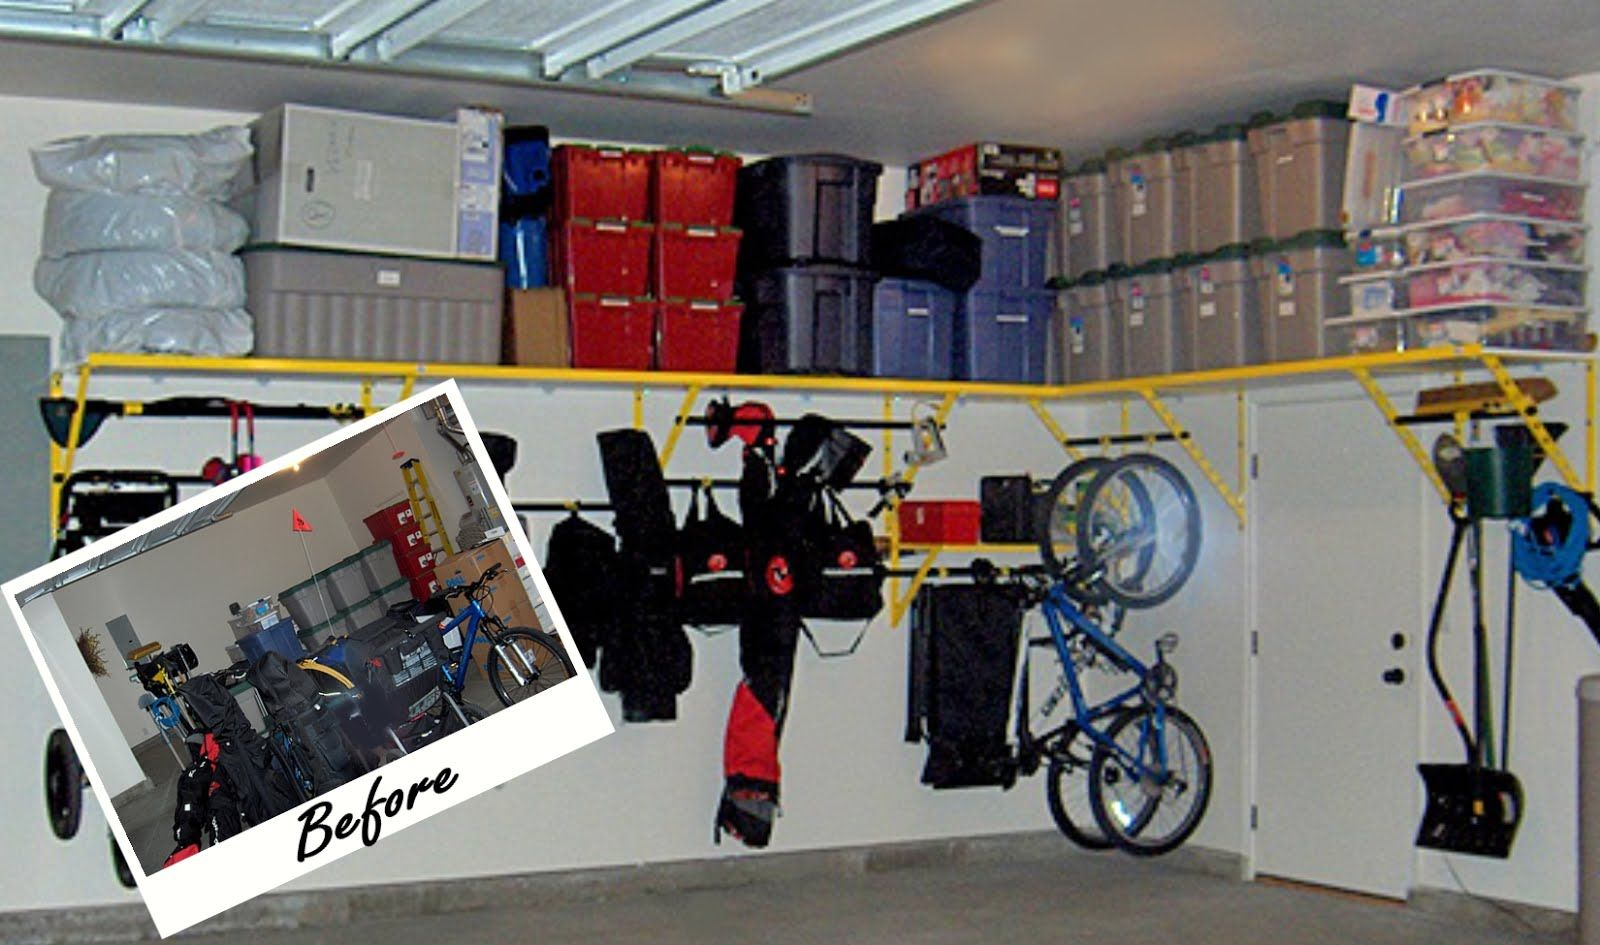 Garage Storage Organization Before After Photos Tell The Story